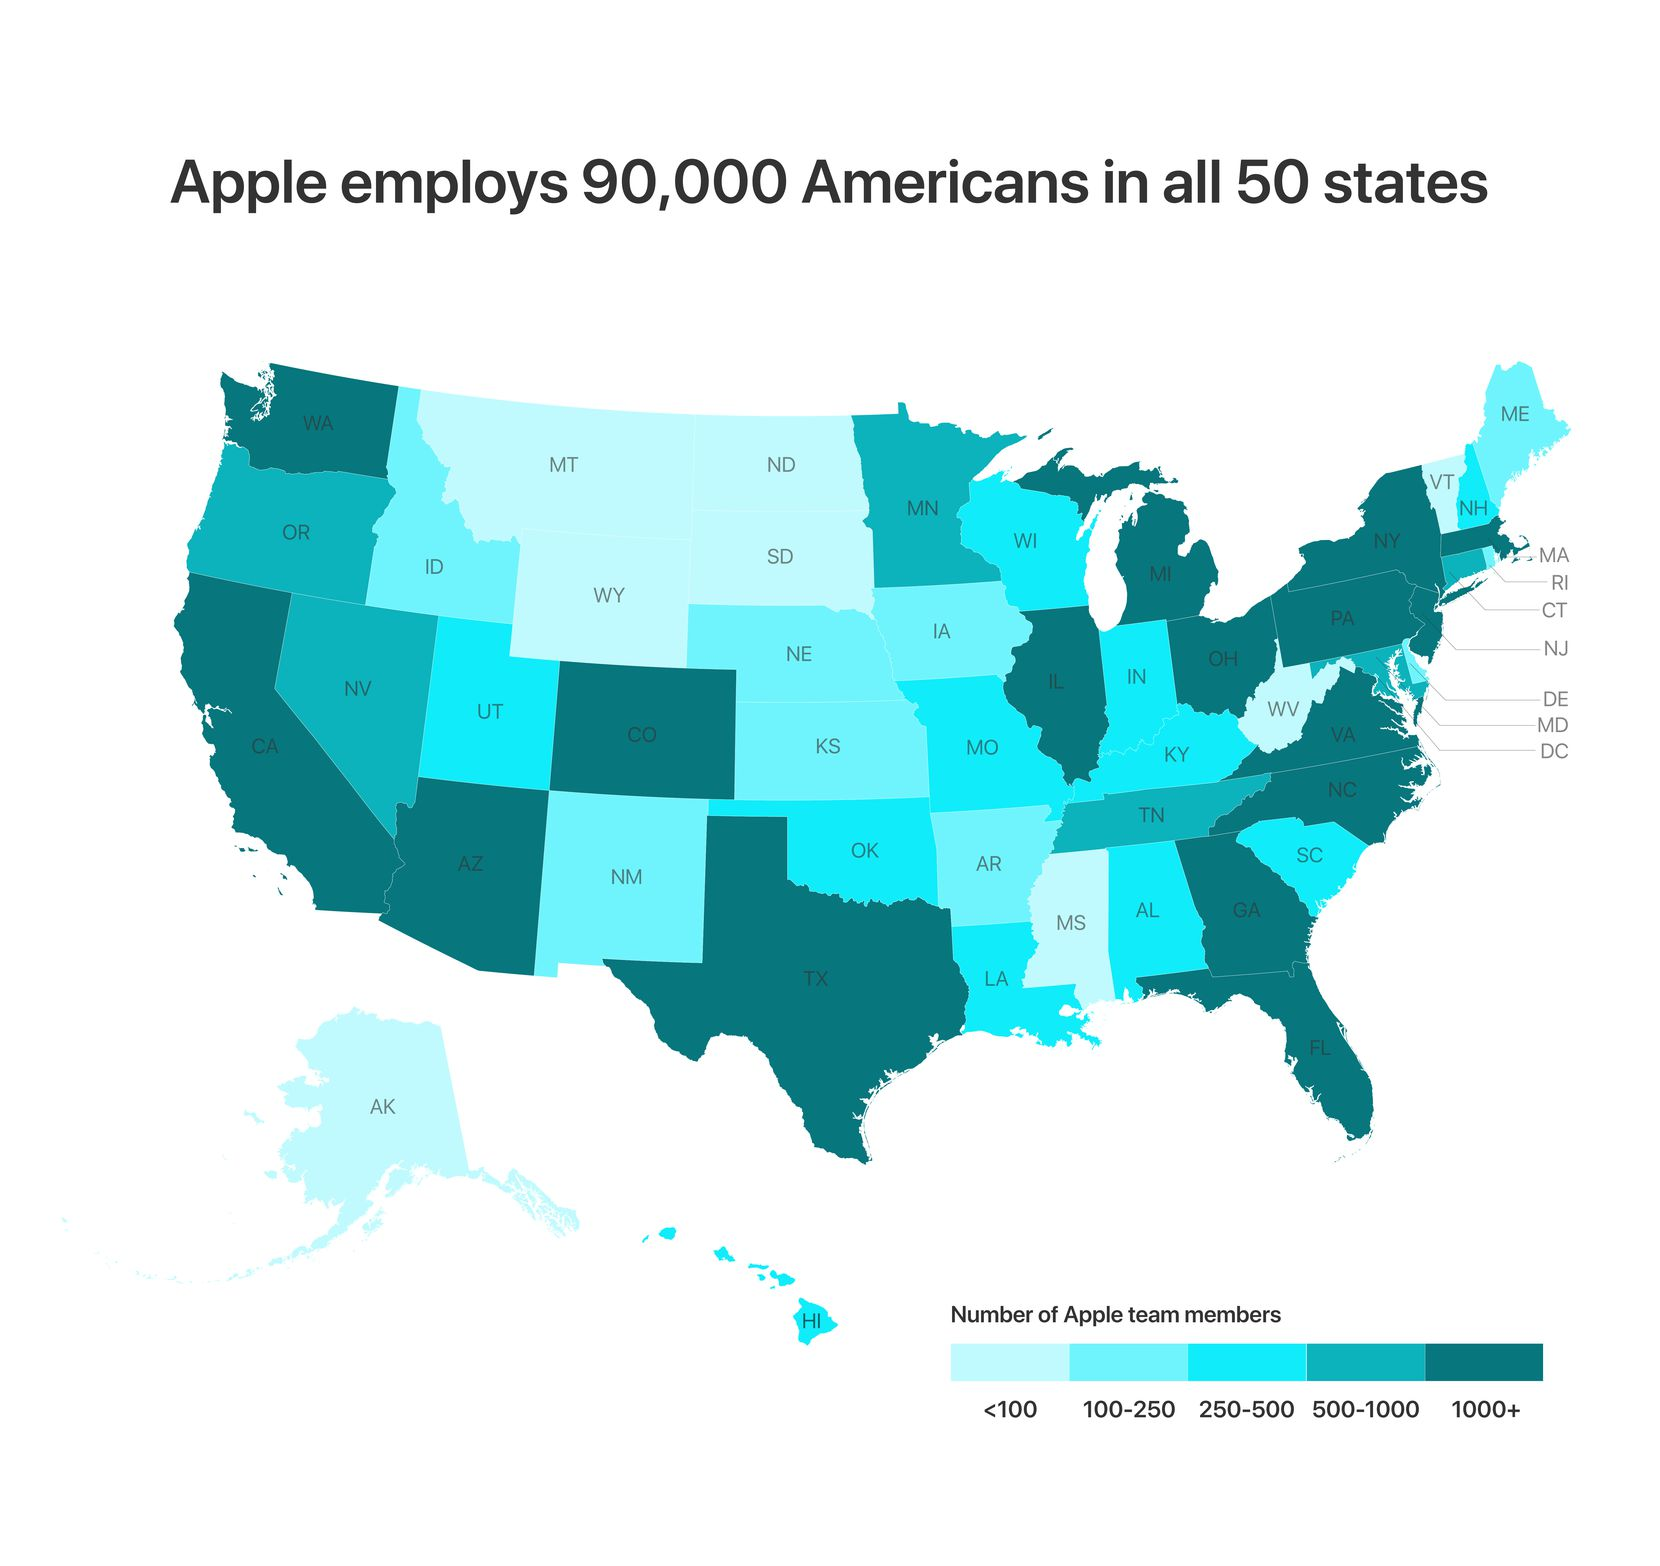 Texas is already among the states where Apple employs more than 1,000 people. Austin is its largest employment cluster outside its California home base.